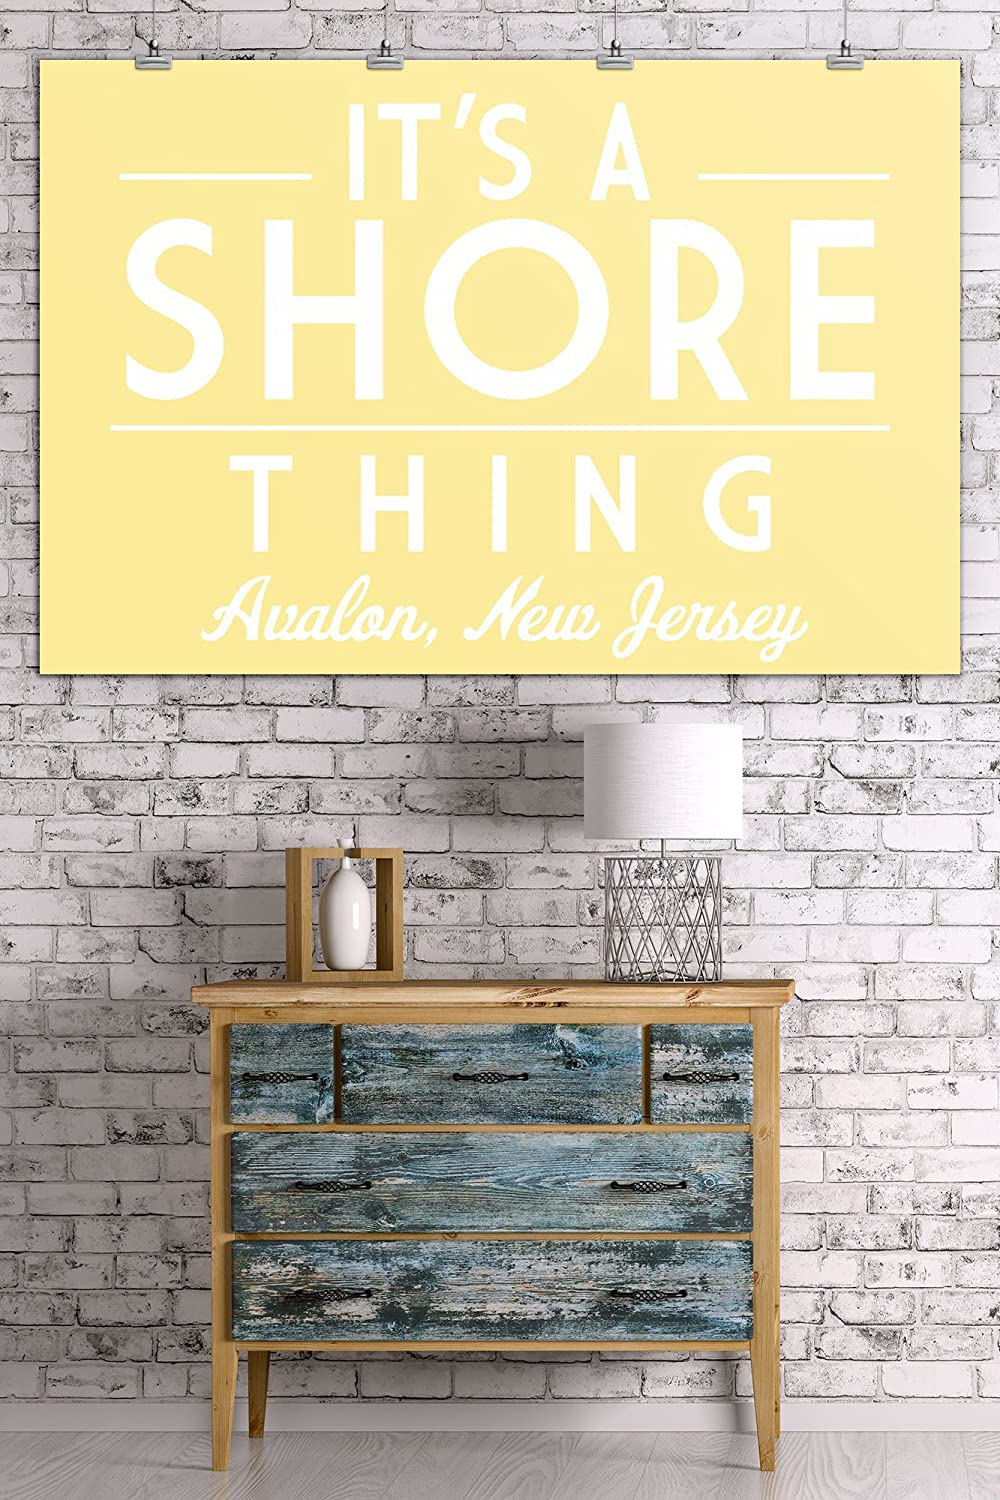 Avalon Its a Shore Thing 24x36 SIGNED Print Master Art Print - Wall Decor Poster Simply Said 78641 New Jersey